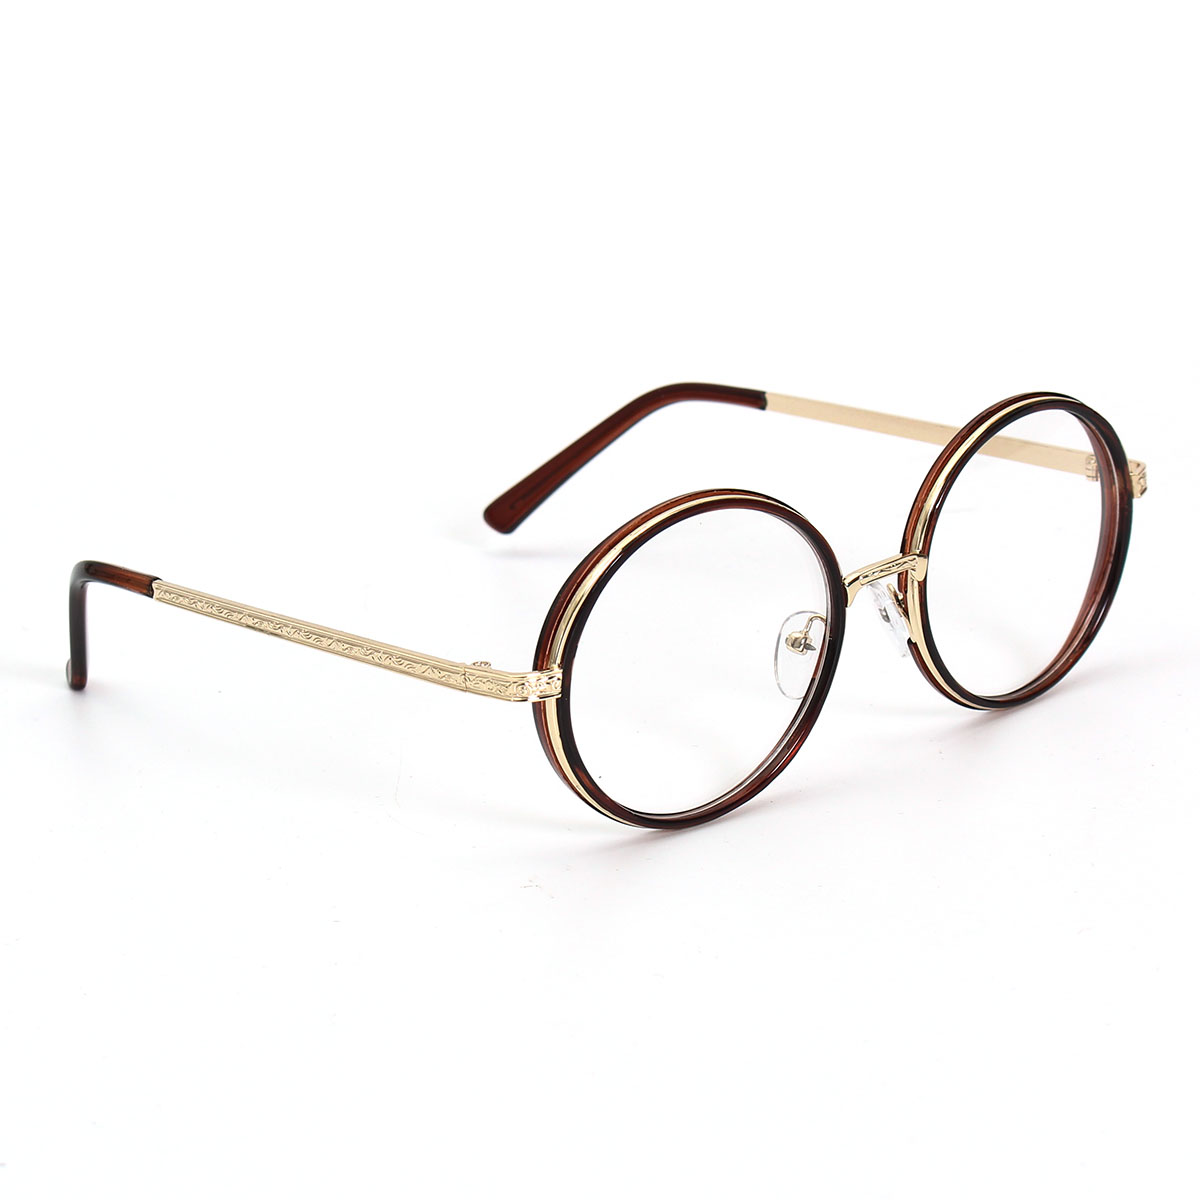 Unisex Vintage 48mm Round Tortoise Gold Eyeglasses Frame Full Rim Glasses Spectacles